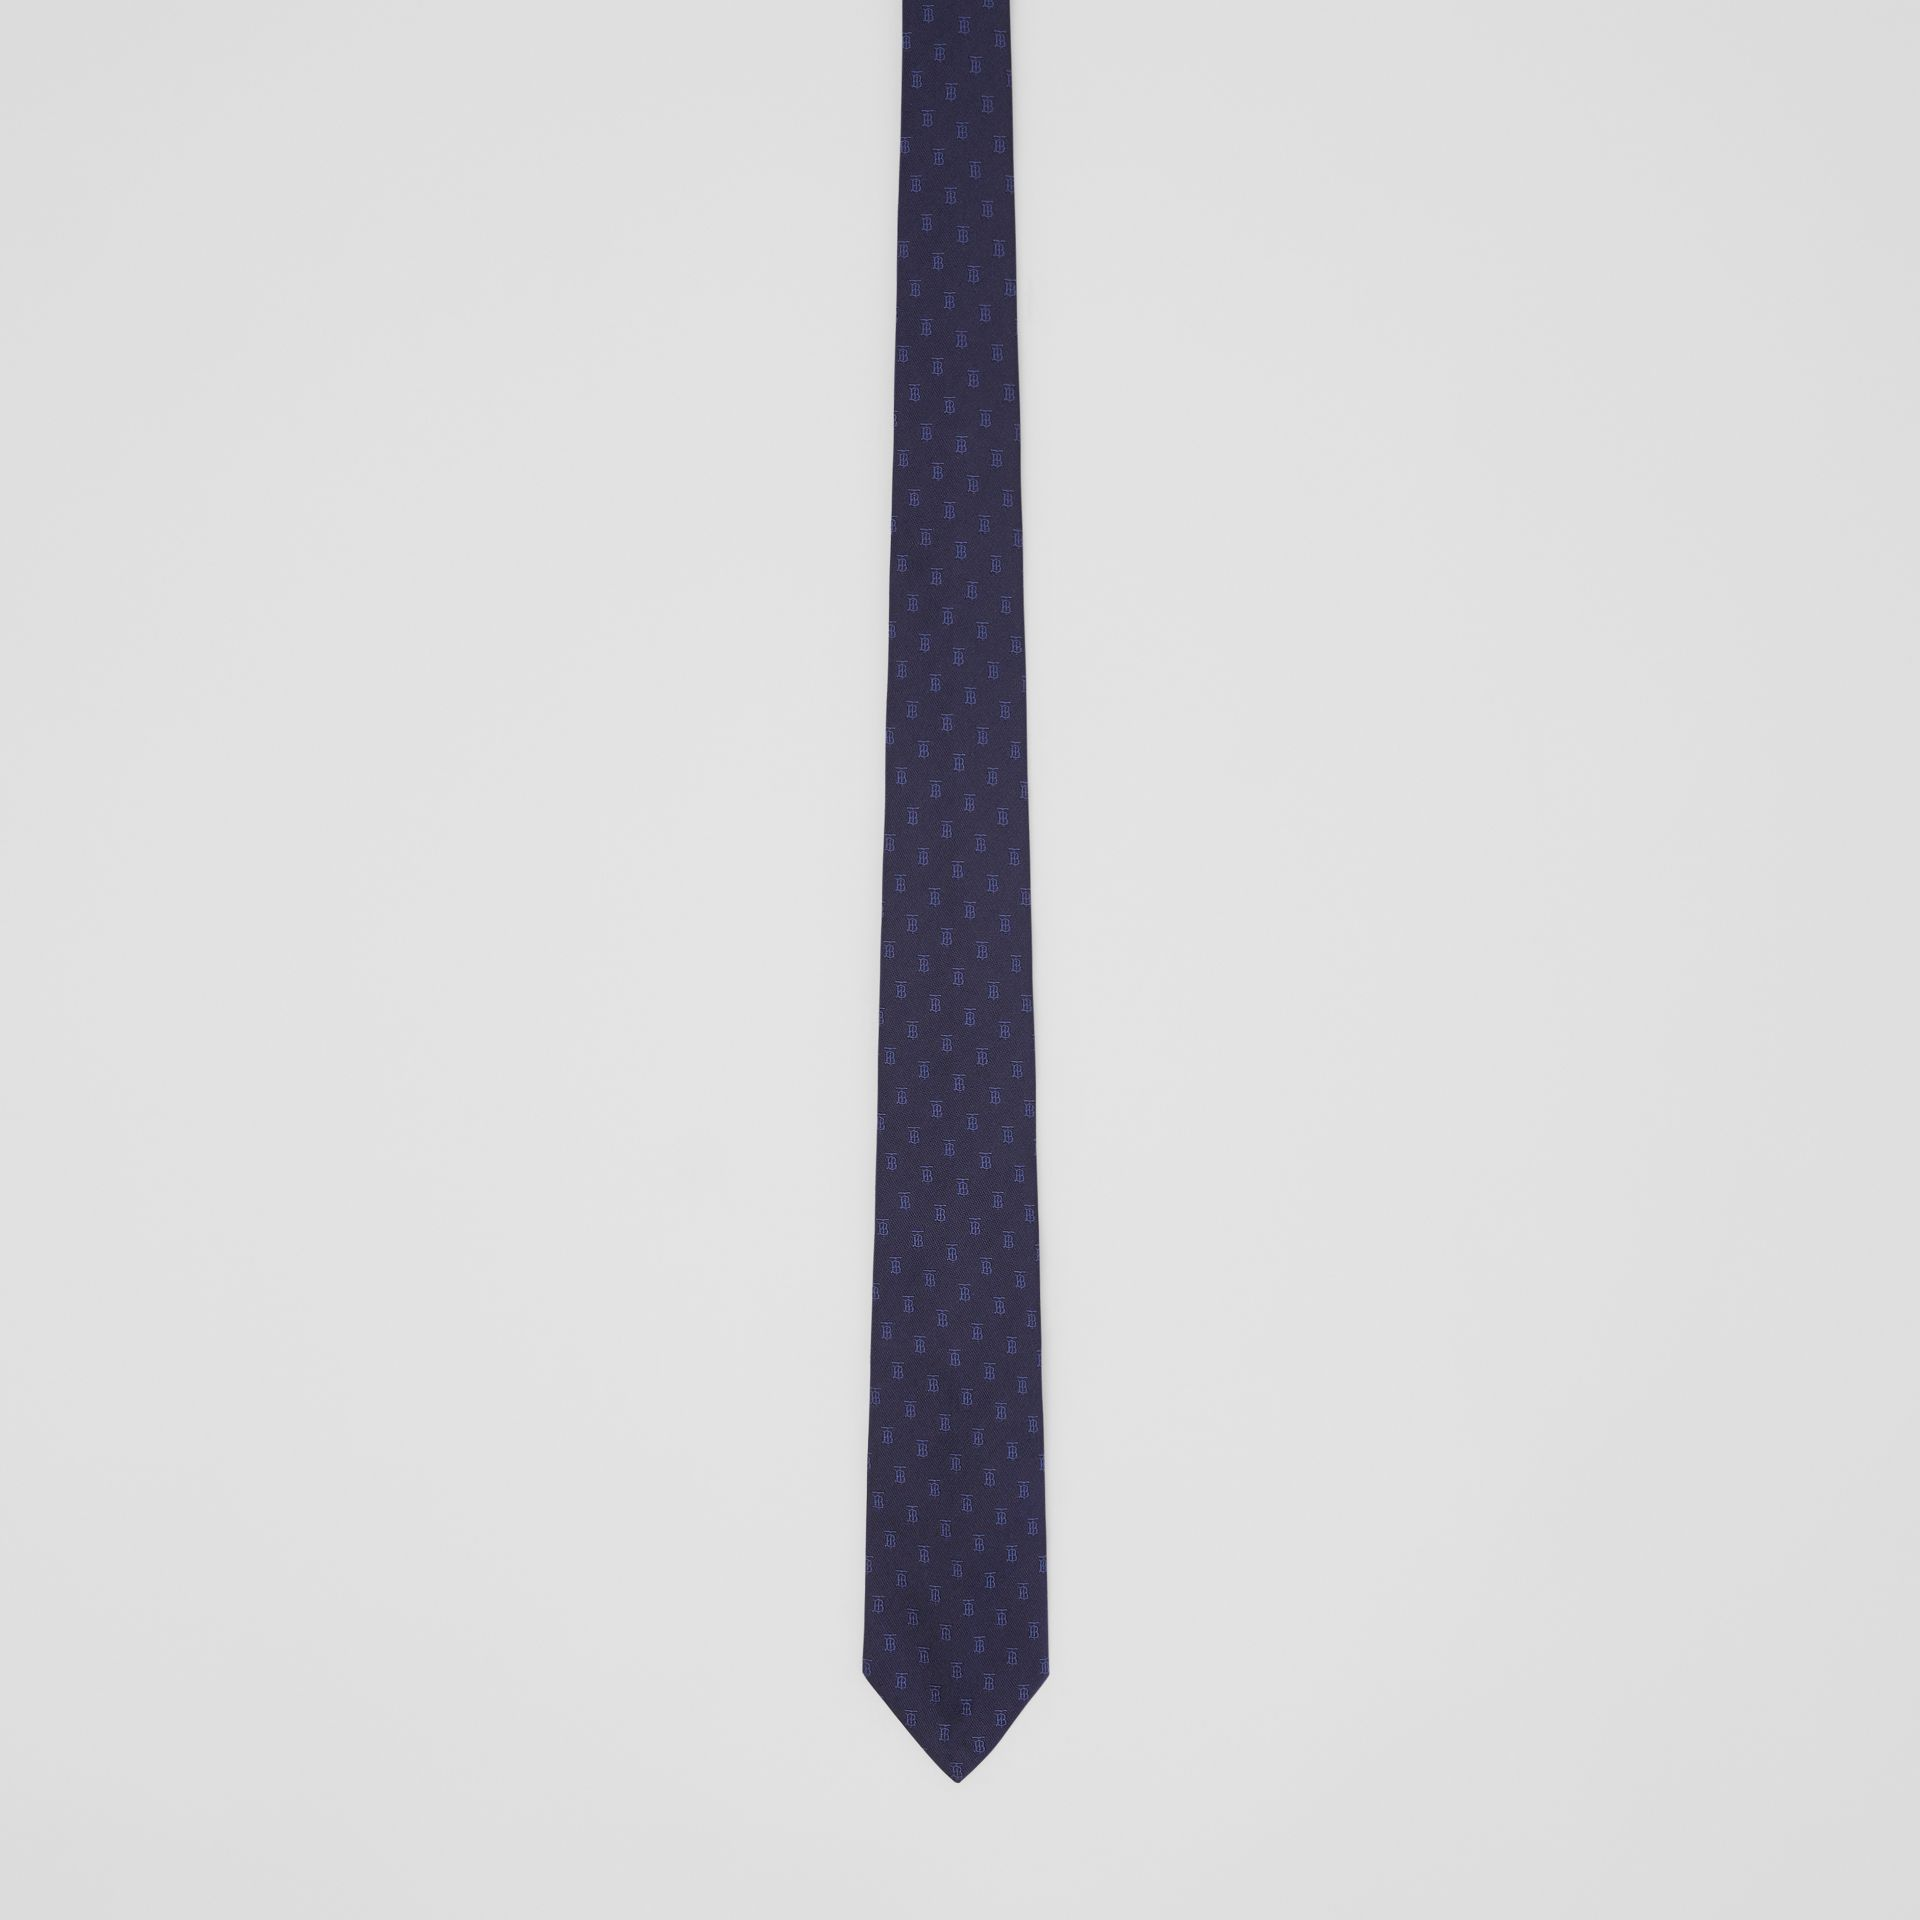 Classic Cut Monogram Motif Silk Jacquard Tie in Navy - Men | Burberry Canada - gallery image 3